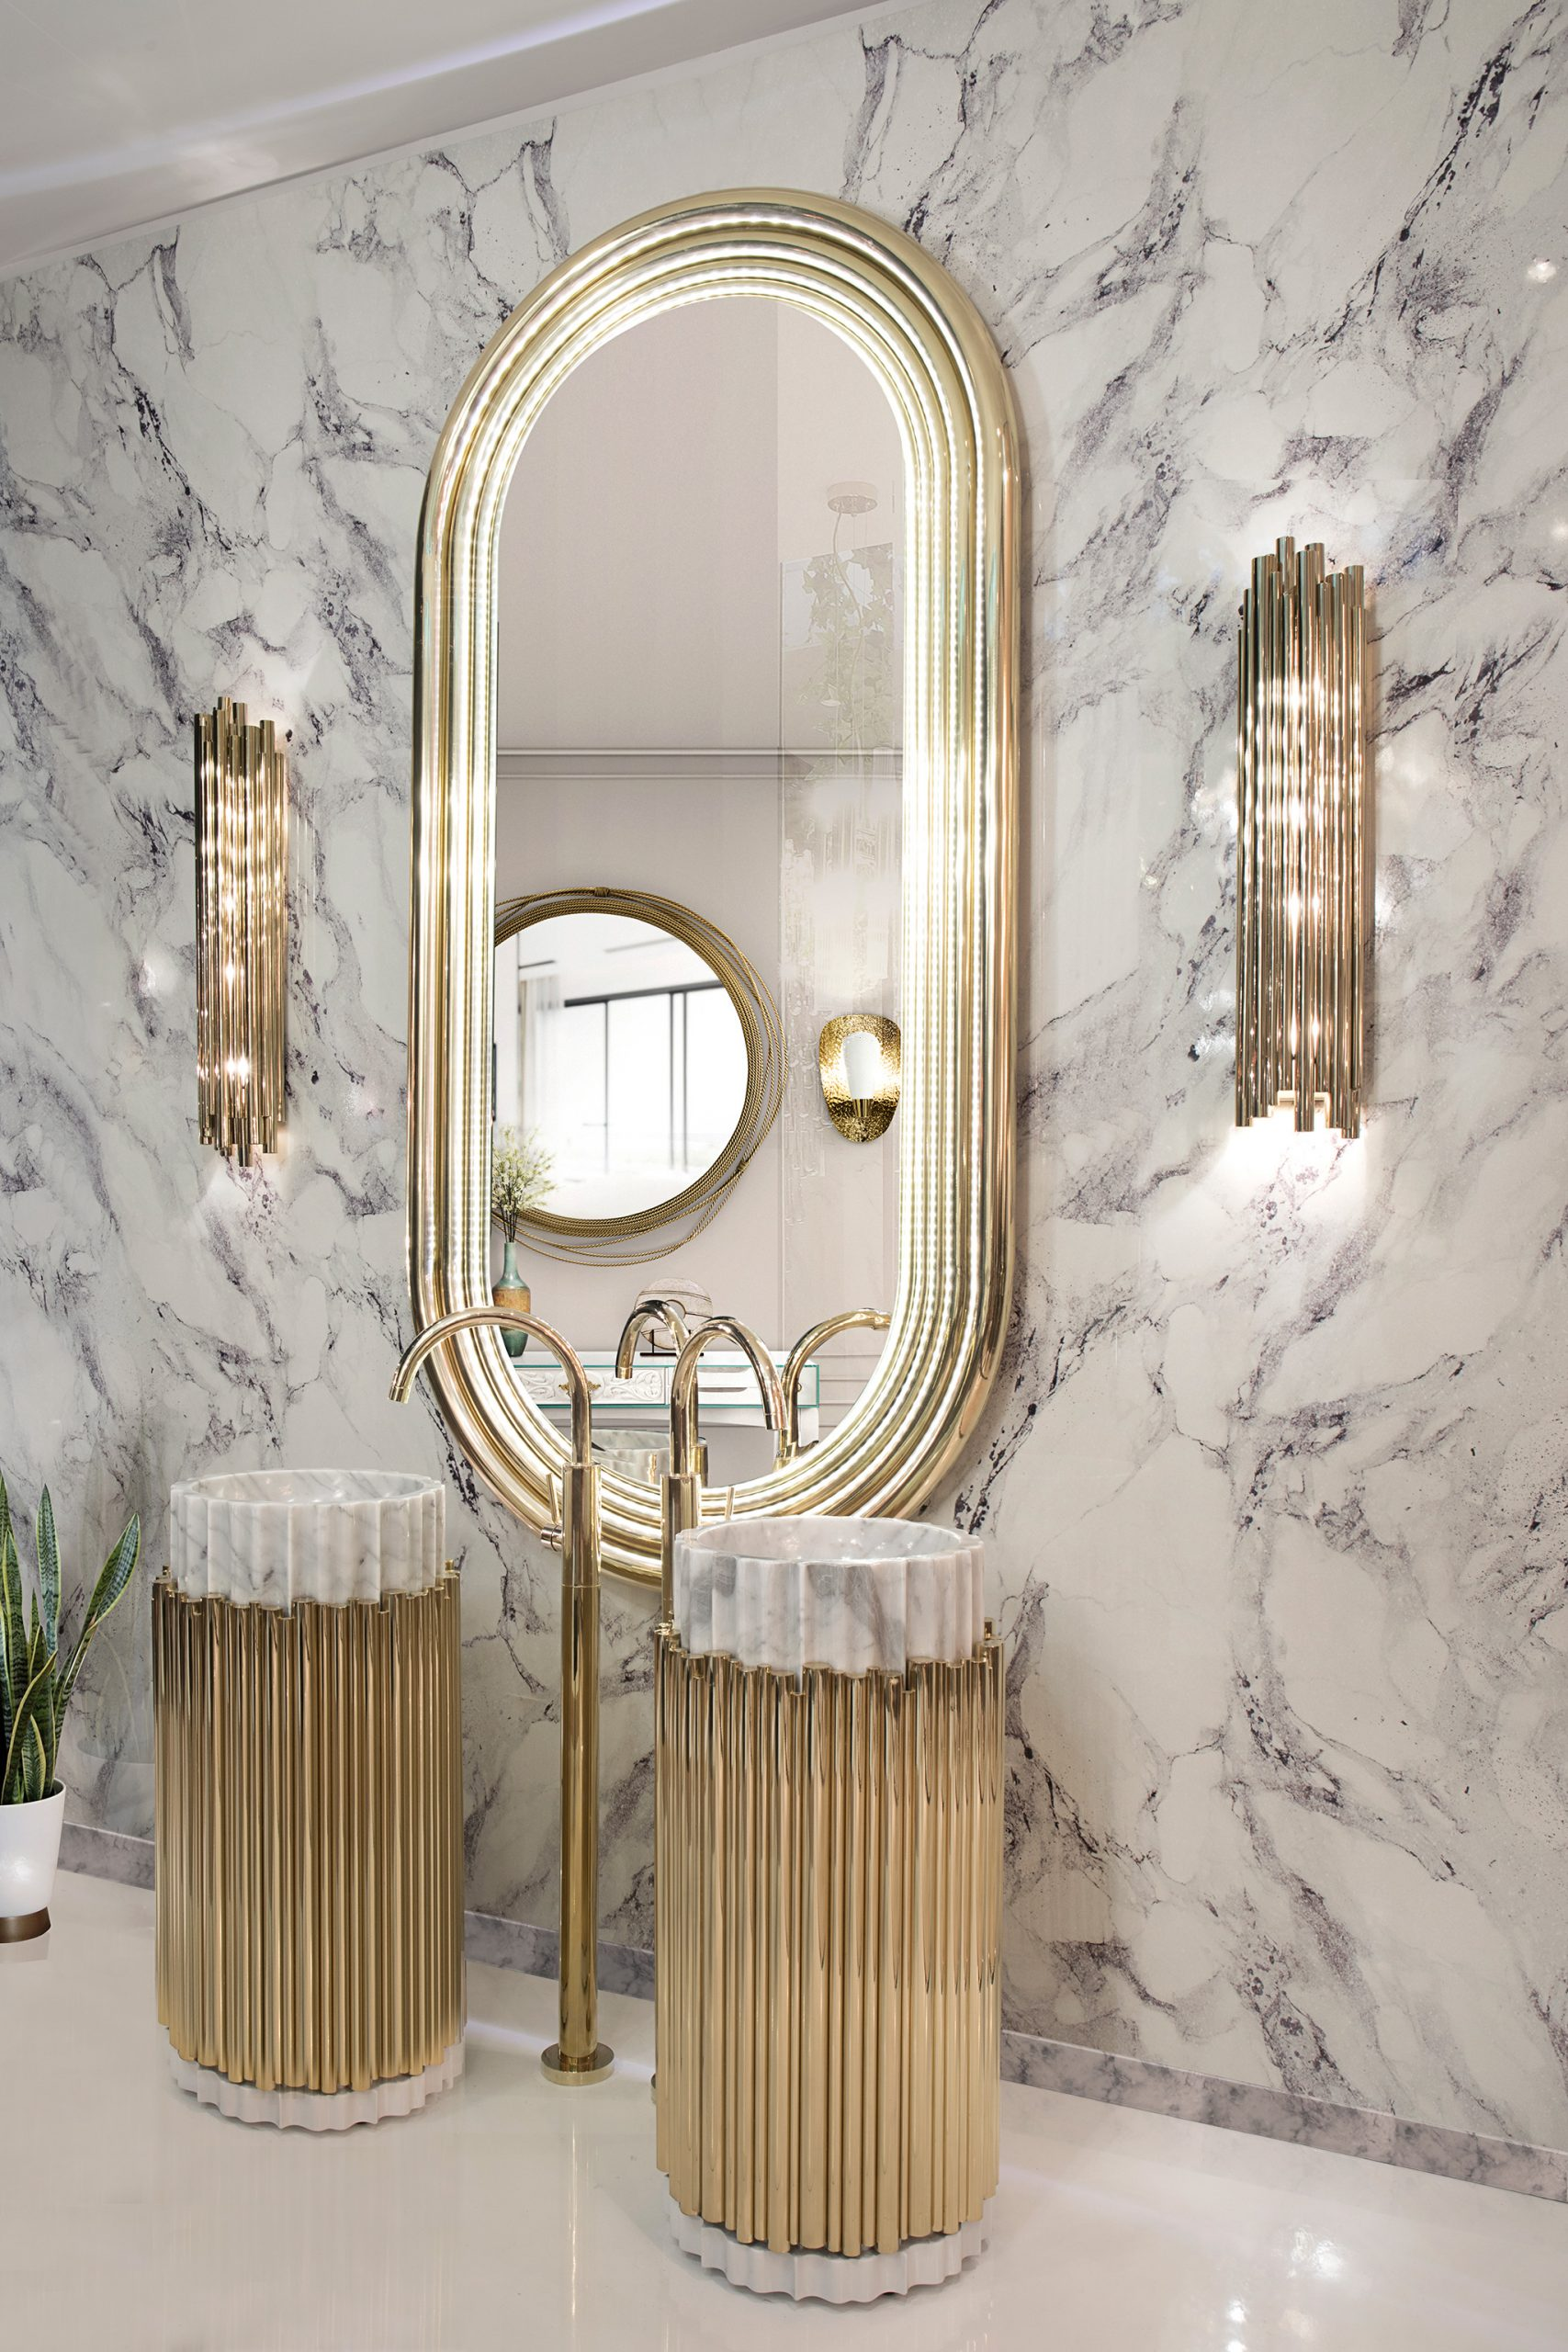 How These Lighting Pieces Added Warmth to a Cold, Unwelcoming Bathroom lighting How These Lighting Pieces Added Warmth to a Cold, Unwelcoming Bathroom 7 1 scaled